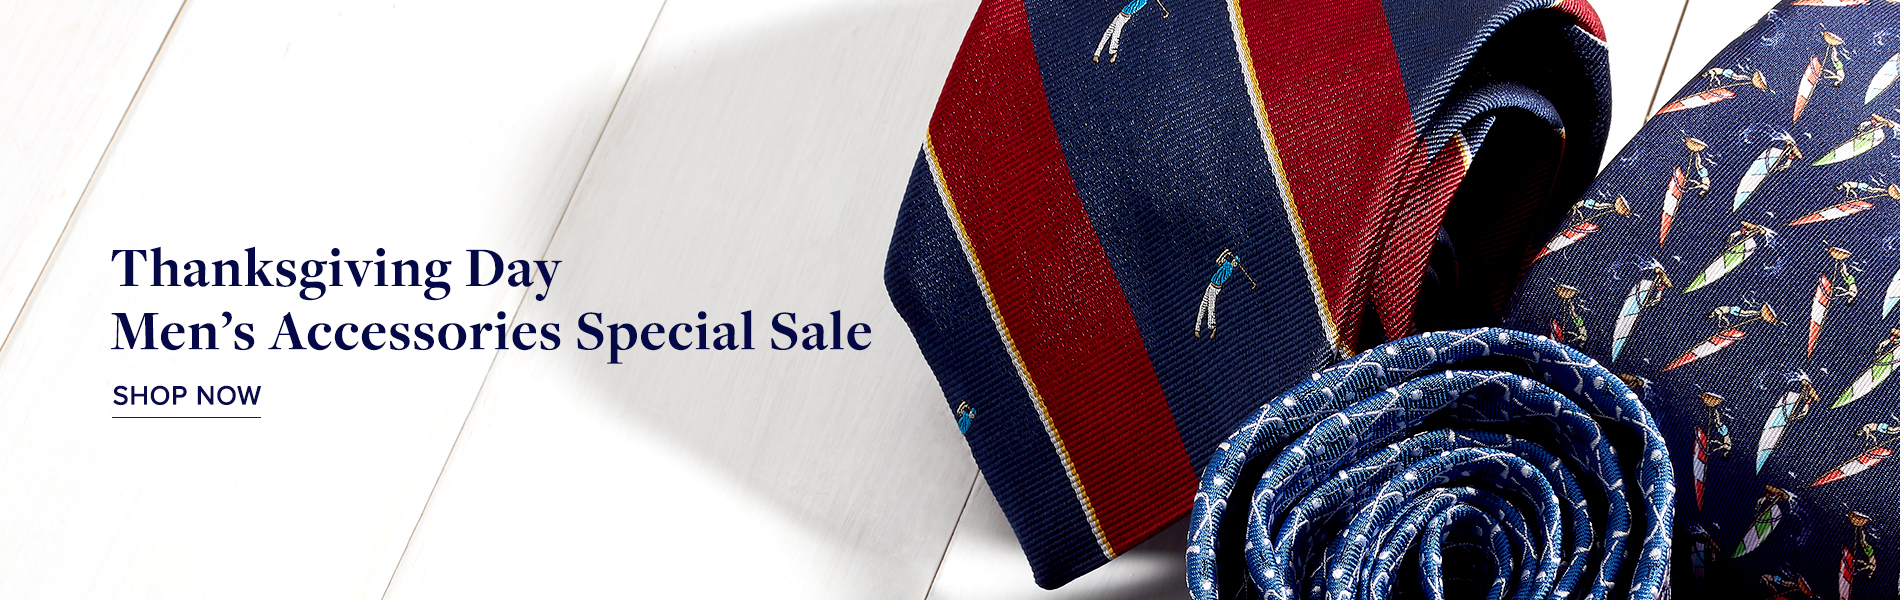 Thanks giving Day Men's Accessories Special Sale